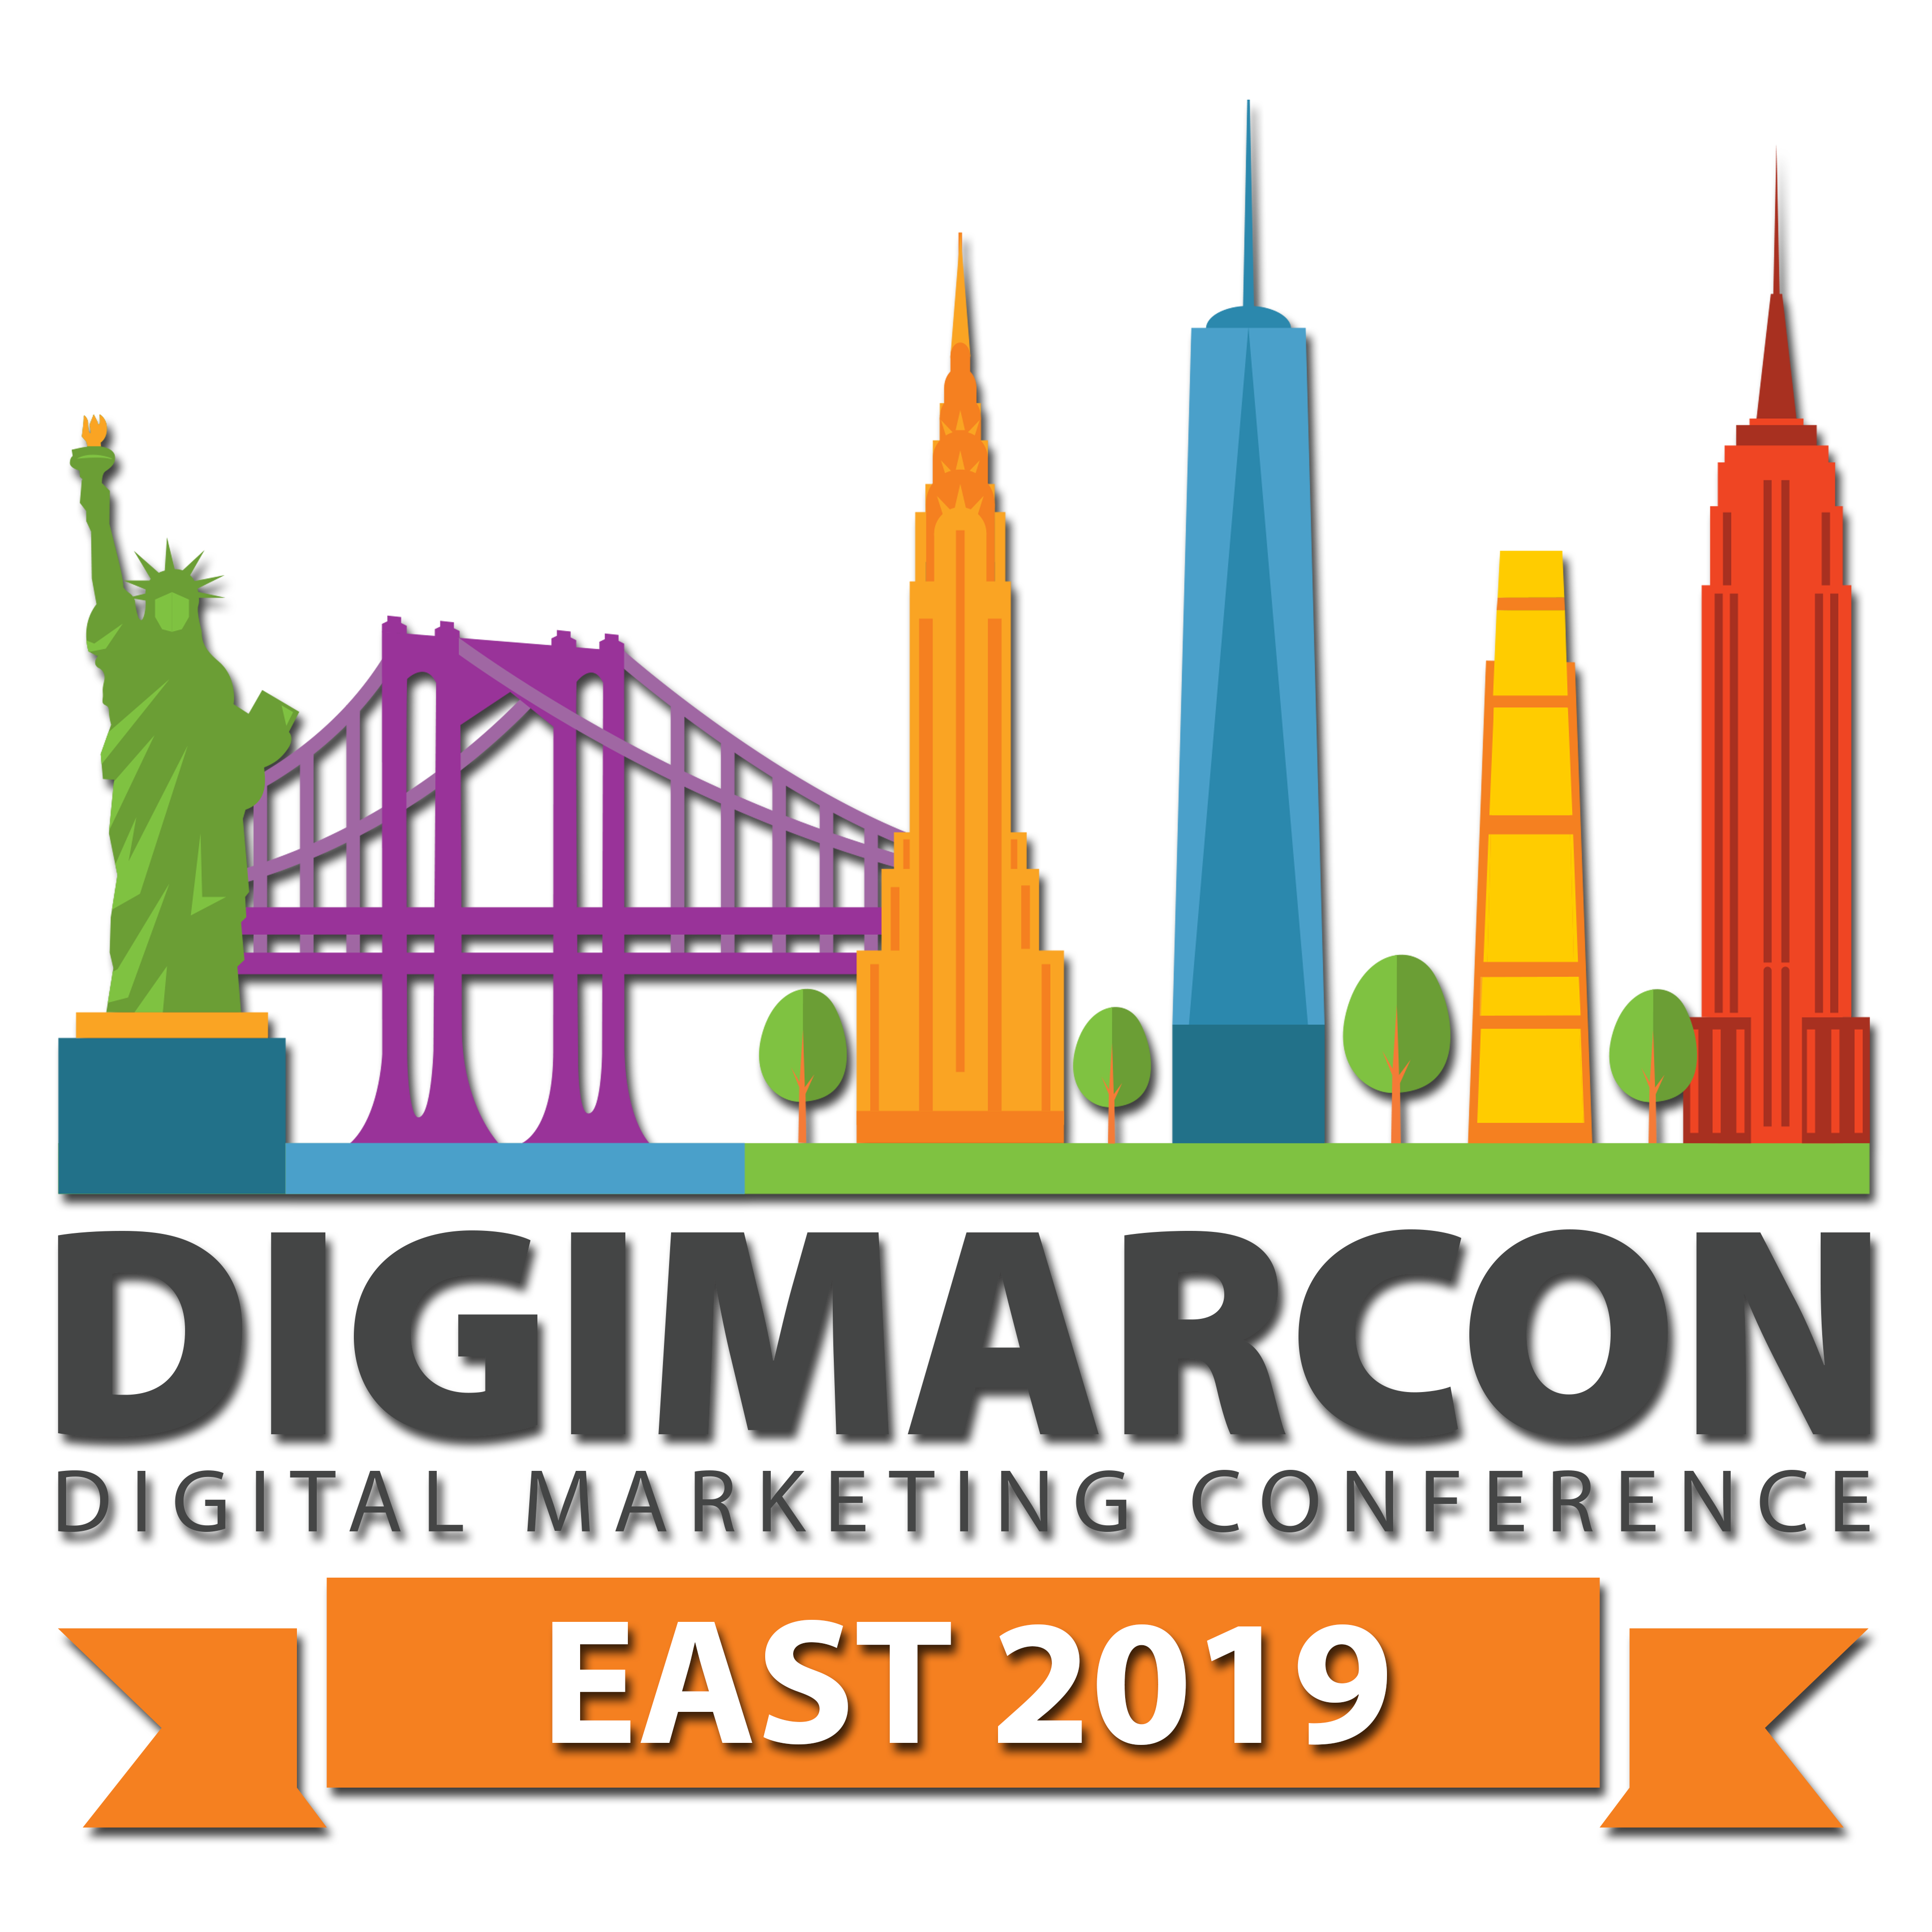 DigiMarCon East 2019 · New York, NY · May 9 - 10, 2019 · Digital